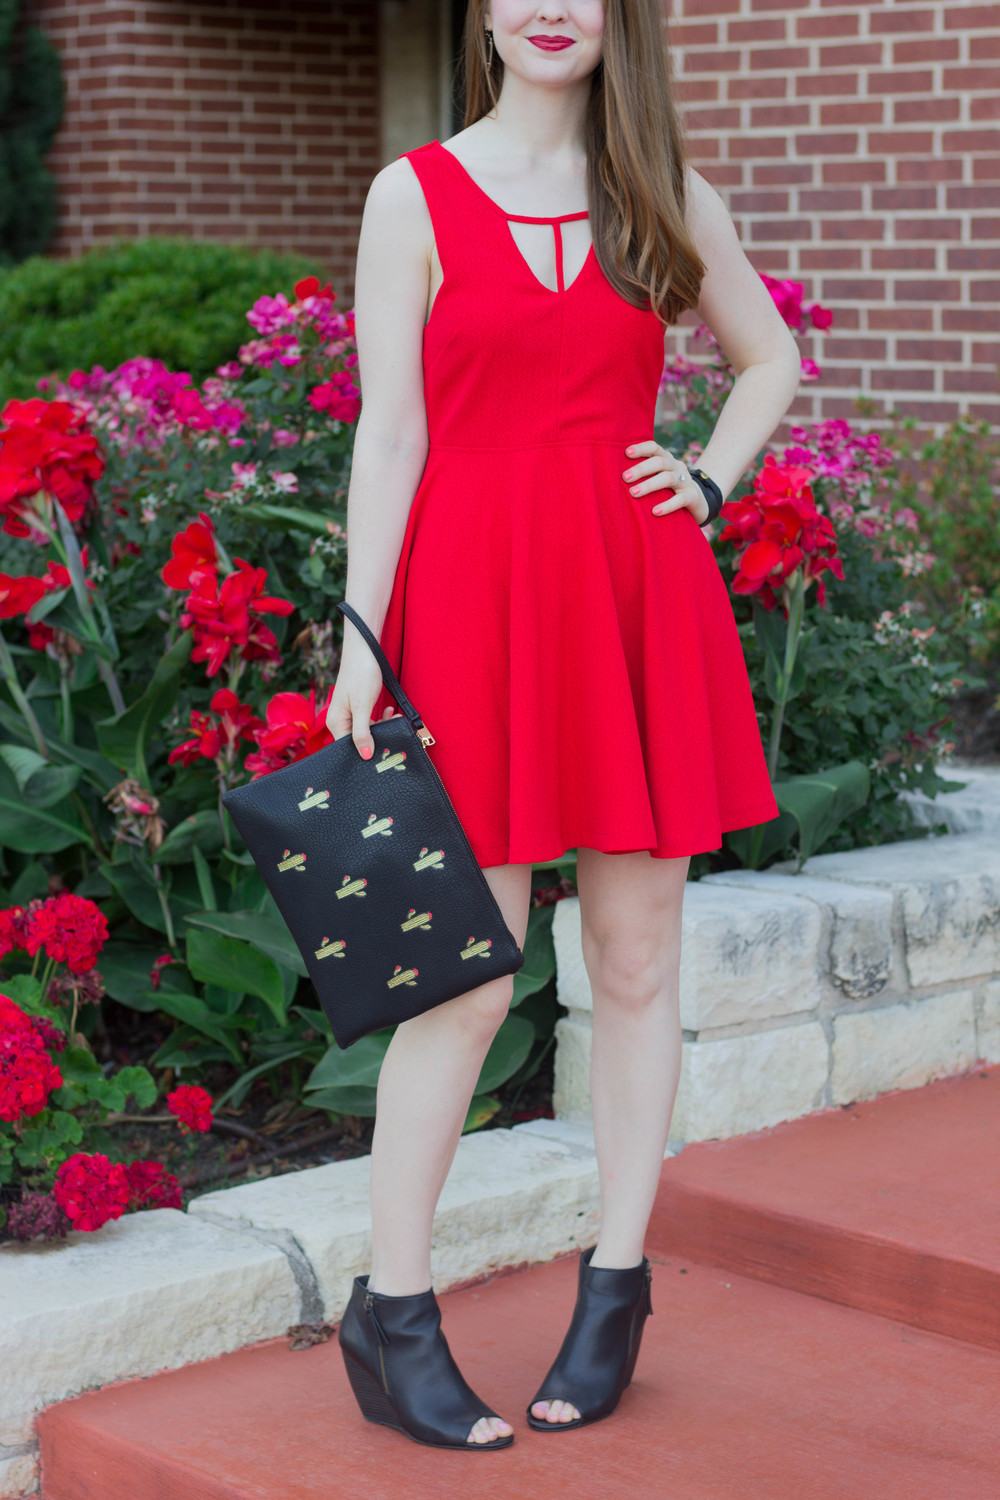 minkpink red dress, bc footwear wedges, street level le tote cactus clutch, kendra scott skylar earrings, nars manhunter lipstick. dancer emoji